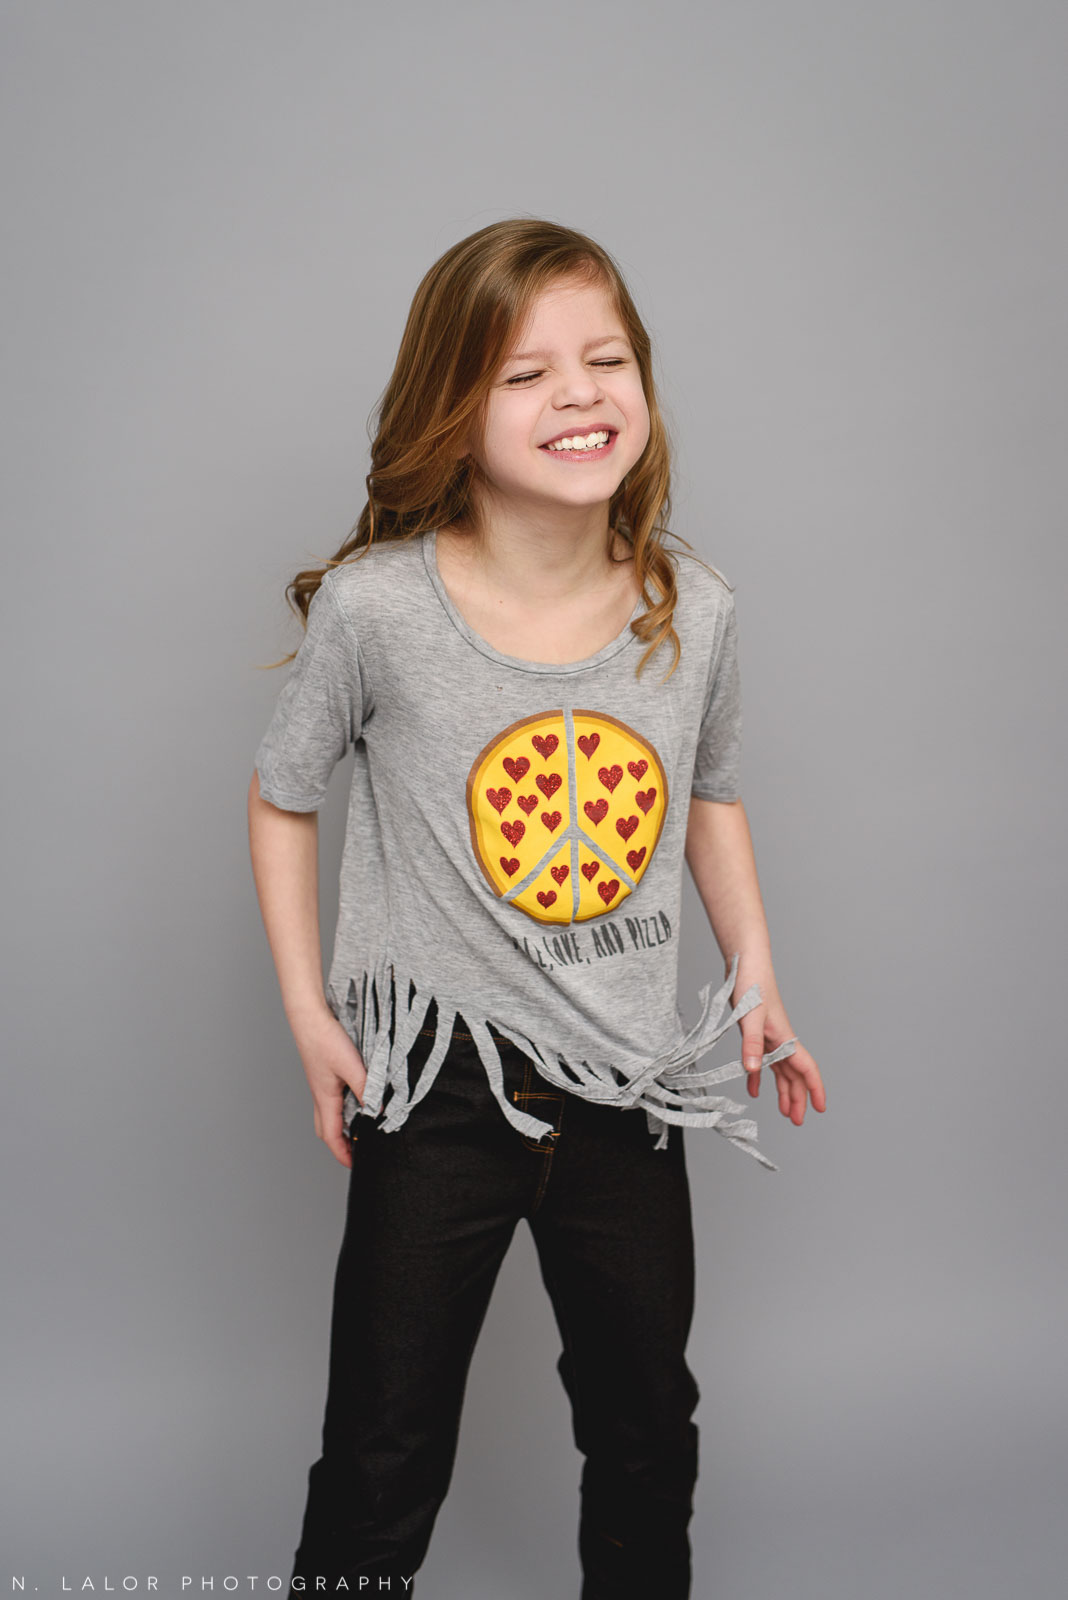 Favorite pizza shirt. Tween photo session with N. Lalor Photography. Studio located in Greenwich, Connecticut.